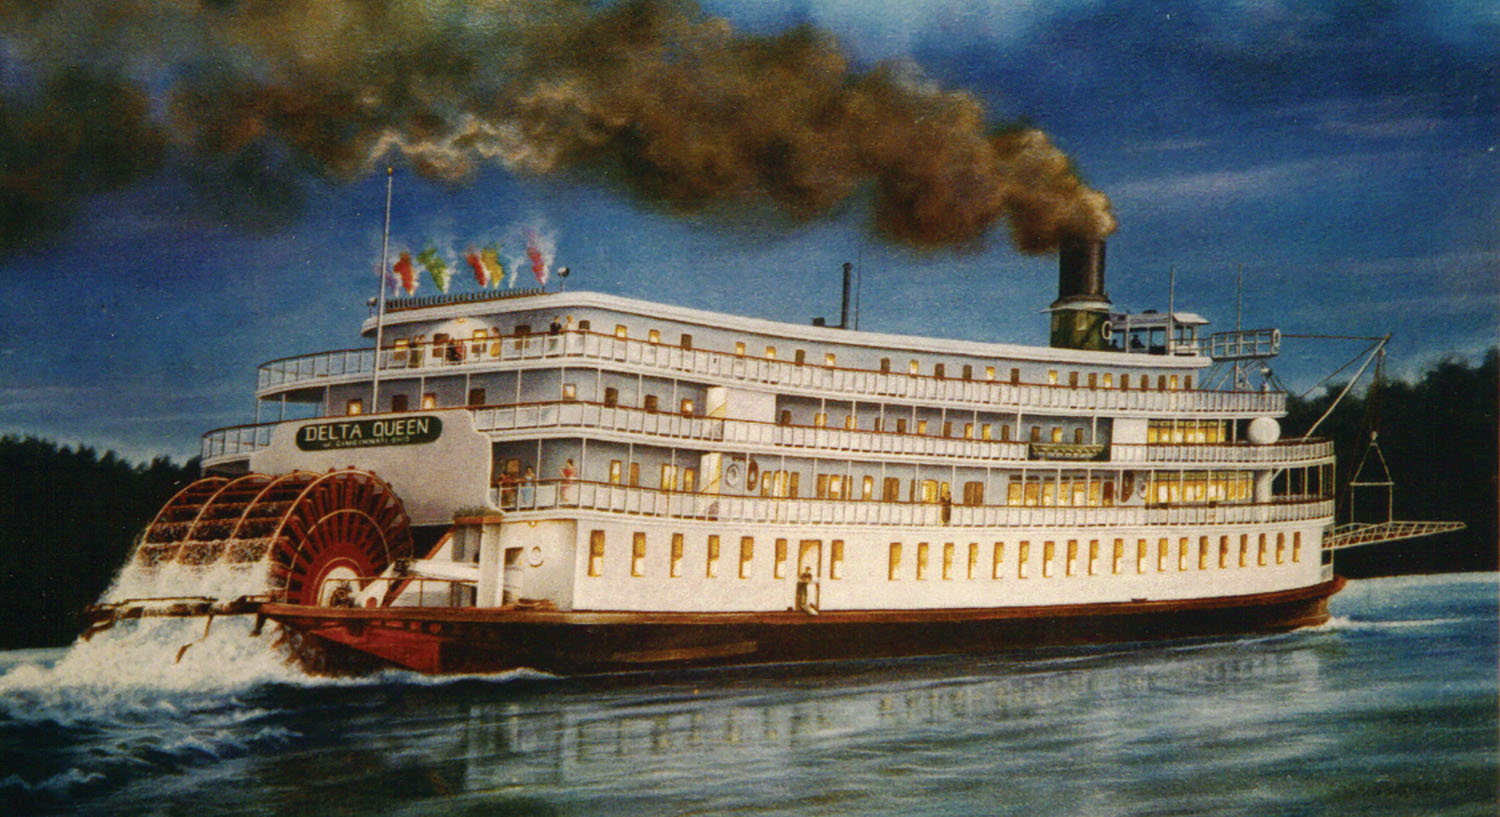 Painting of the Str. Delta Queen, done by Cincinnati steamboat artist Dorothea Frye (1921-2000) in 1963. (Keith Norrington collection)